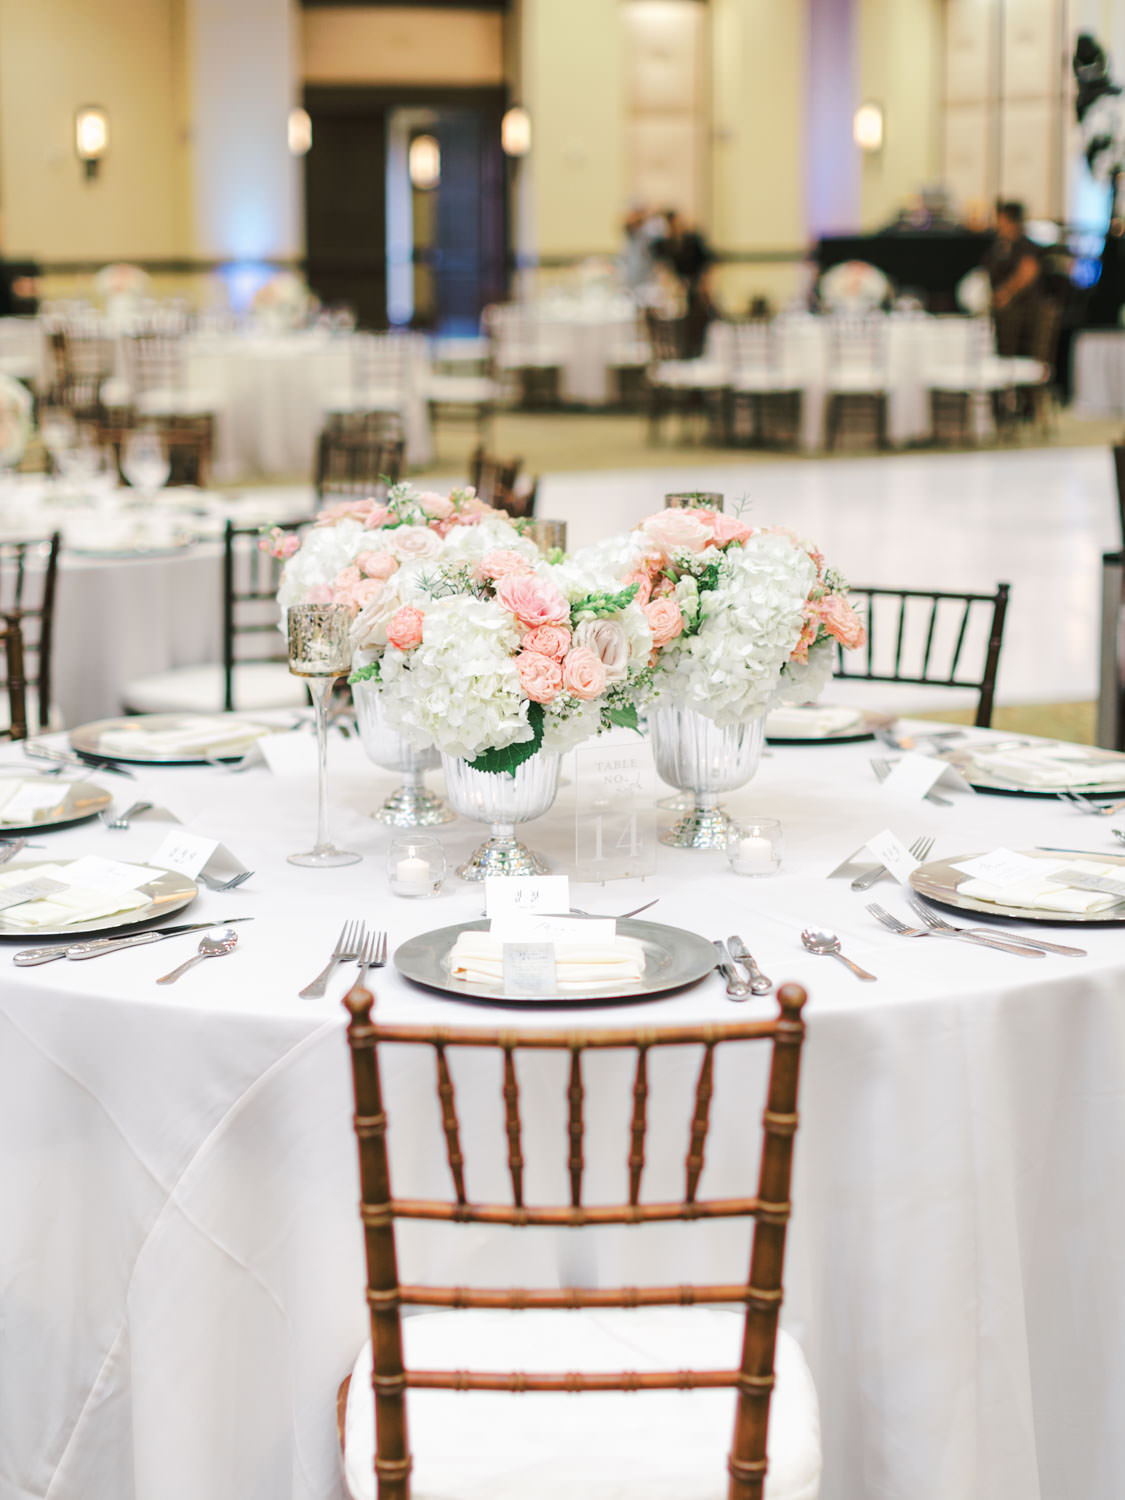 Reception with white linens, oak Chiavari chairs, and ivory, blush, and green centerpieces. Wedding at Rancho Bernardo Inn in the Aragon Ballroom. photo by Cavin Elizabeth Photography